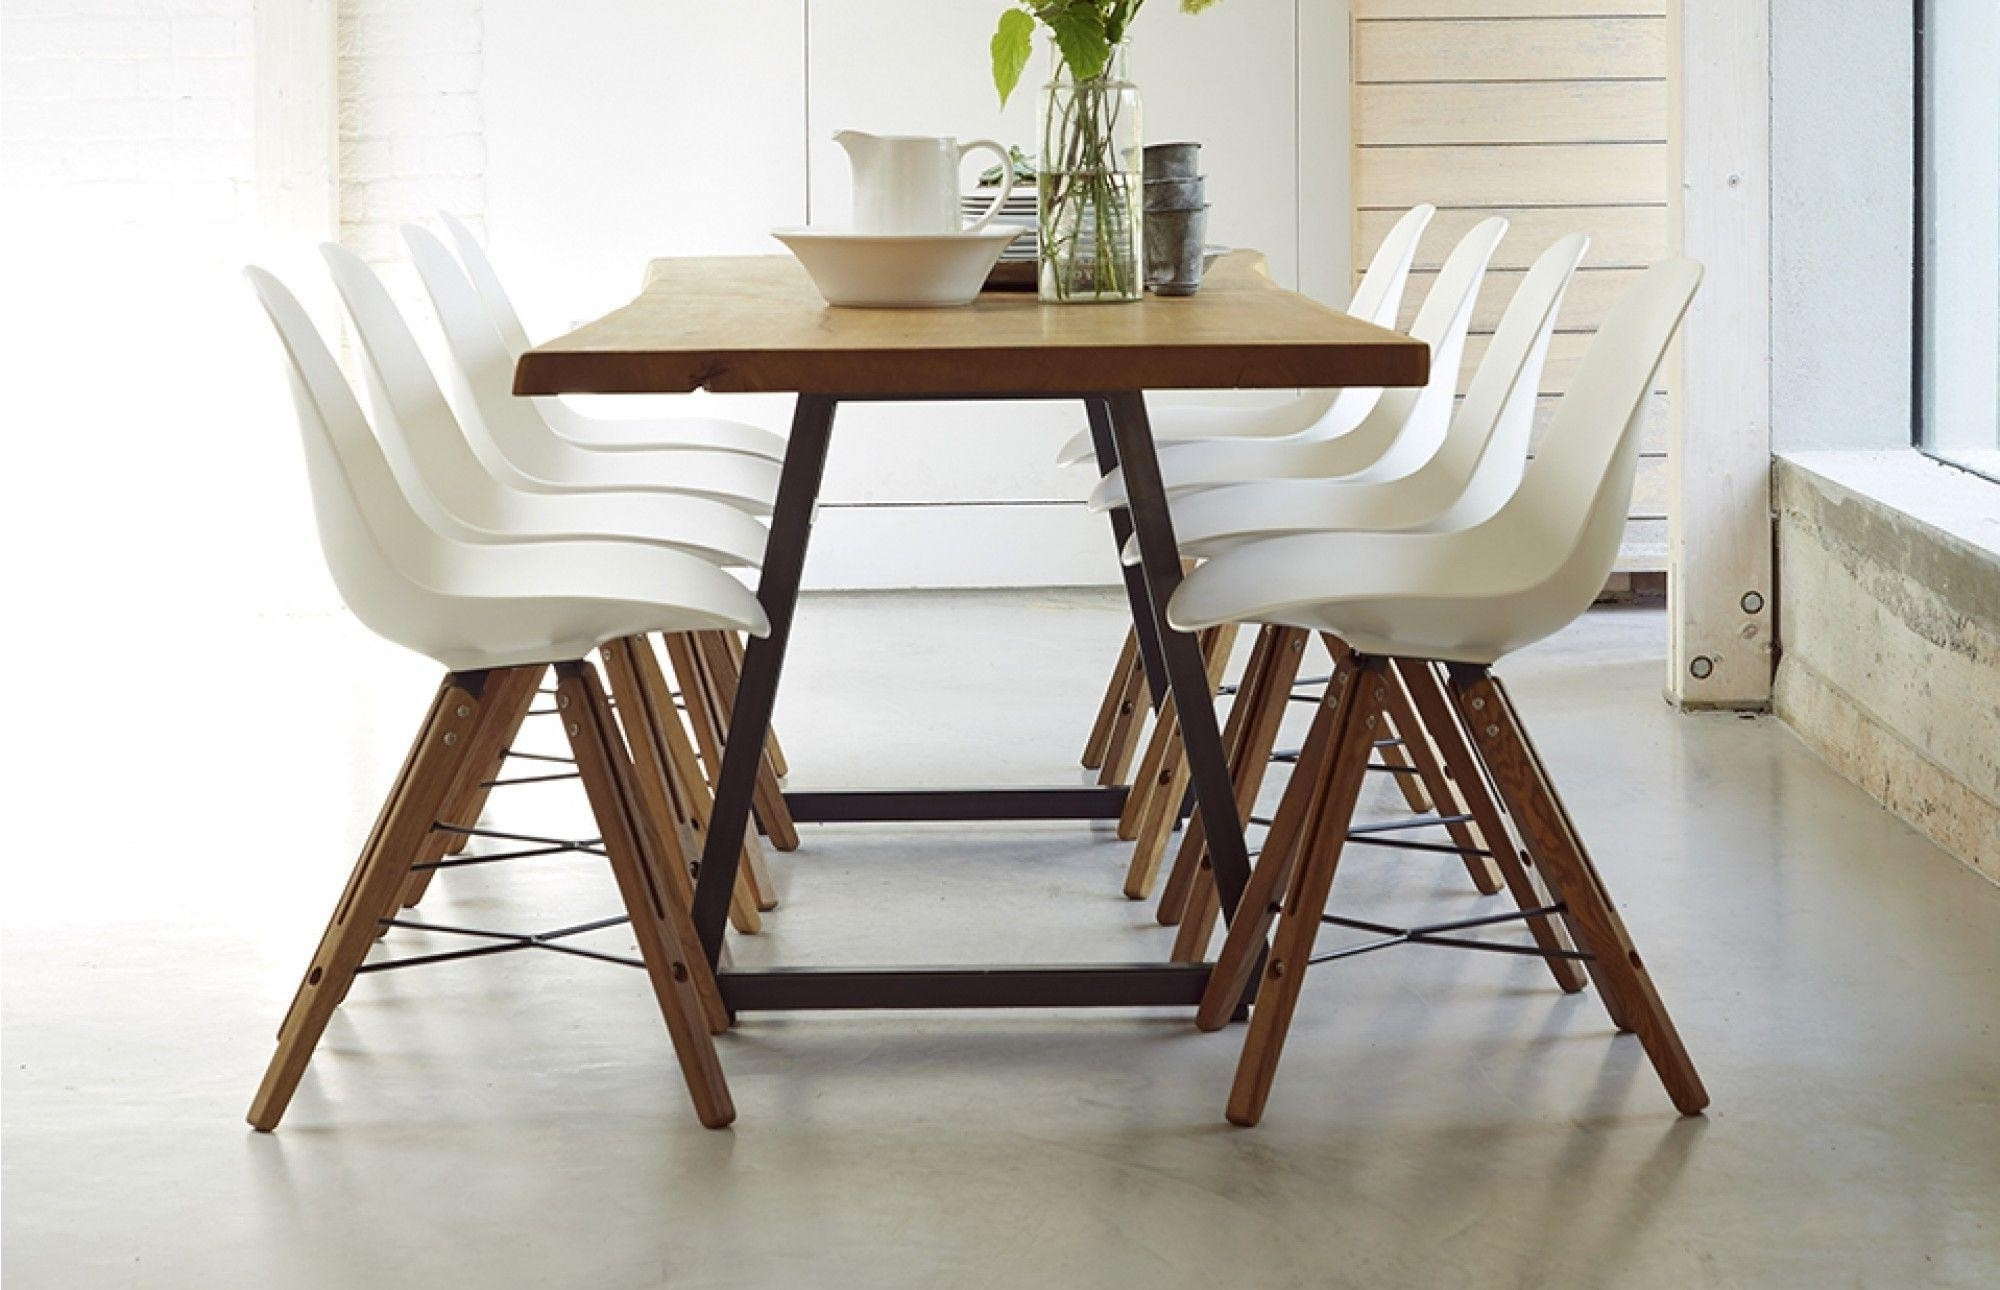 Preferred 8 Seater Oak Dining Tables Pertaining To 6 Seater Dining Table Size Inspirational Best 8 Seater Dining Room (View 2 of 25)